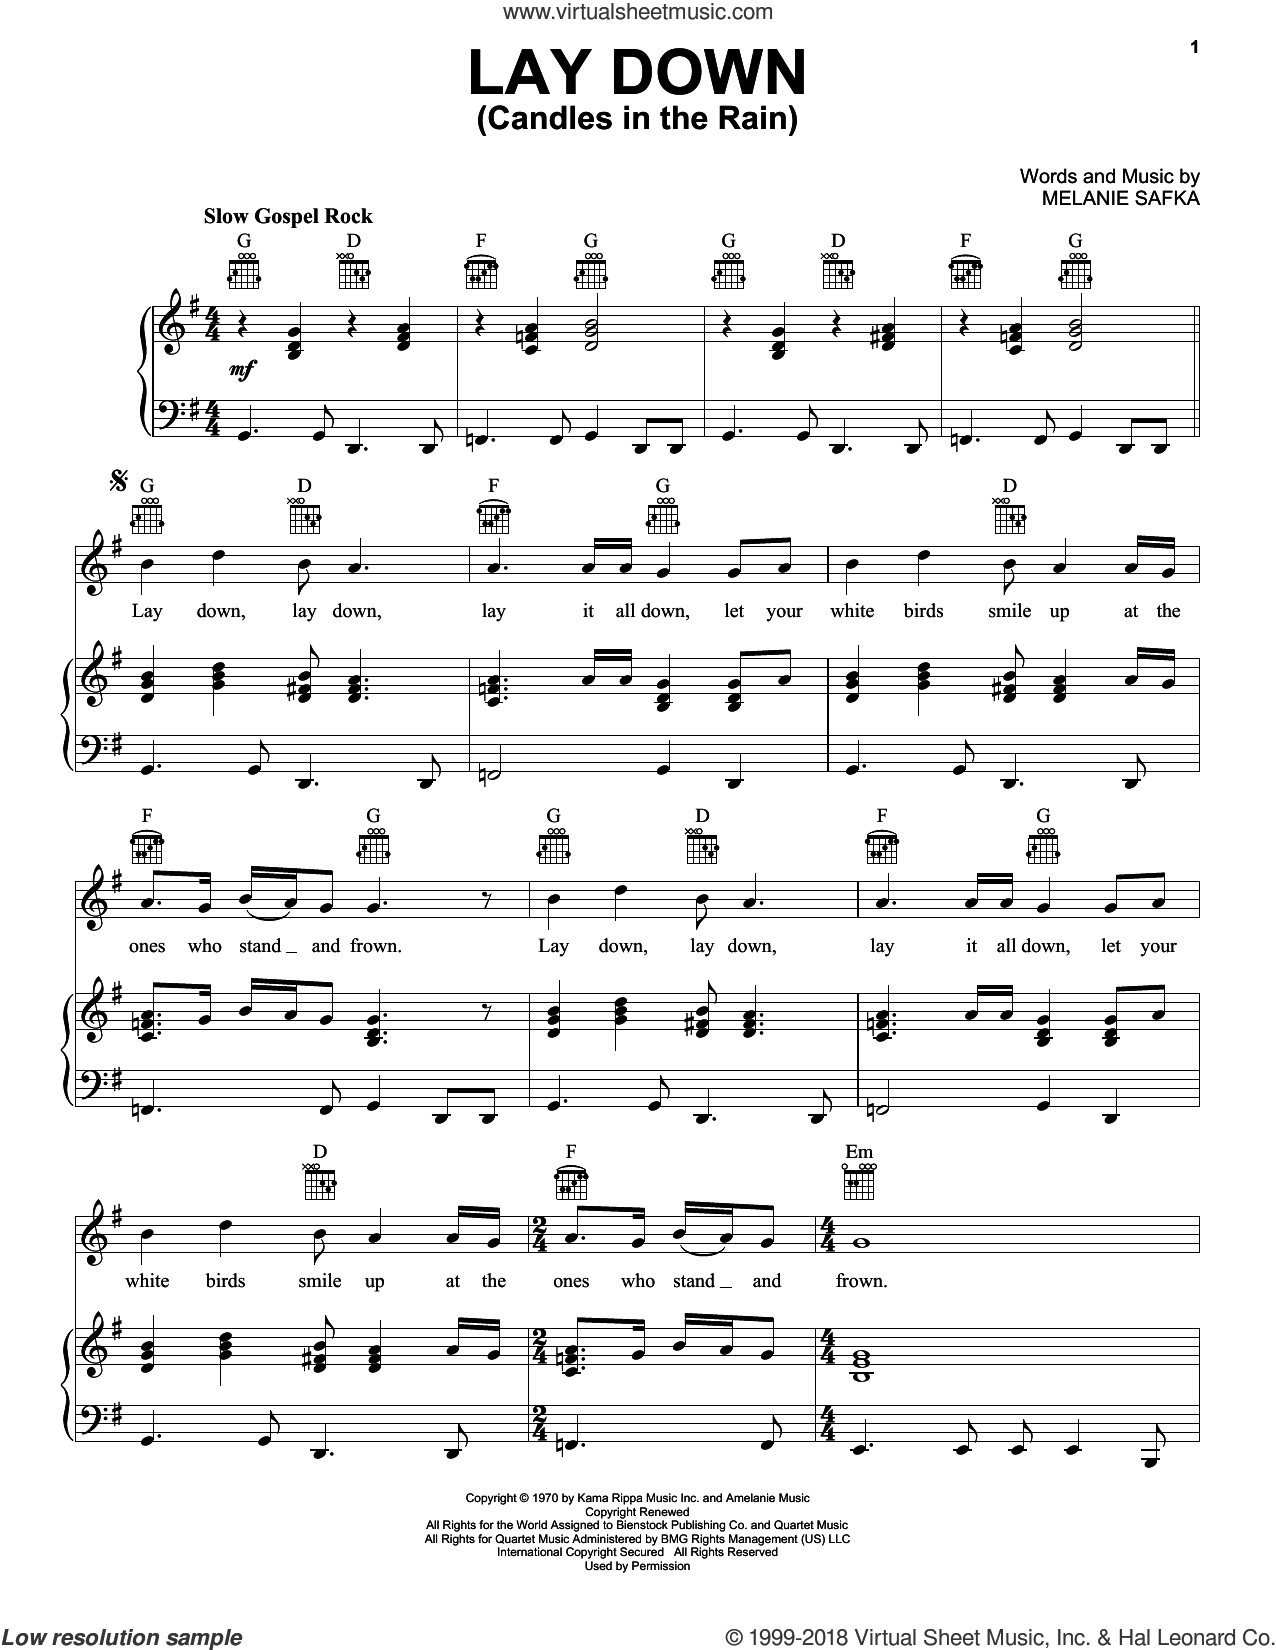 Lay Down (Candles In The Rain) sheet music for voice, piano or guitar by Melanie Safka